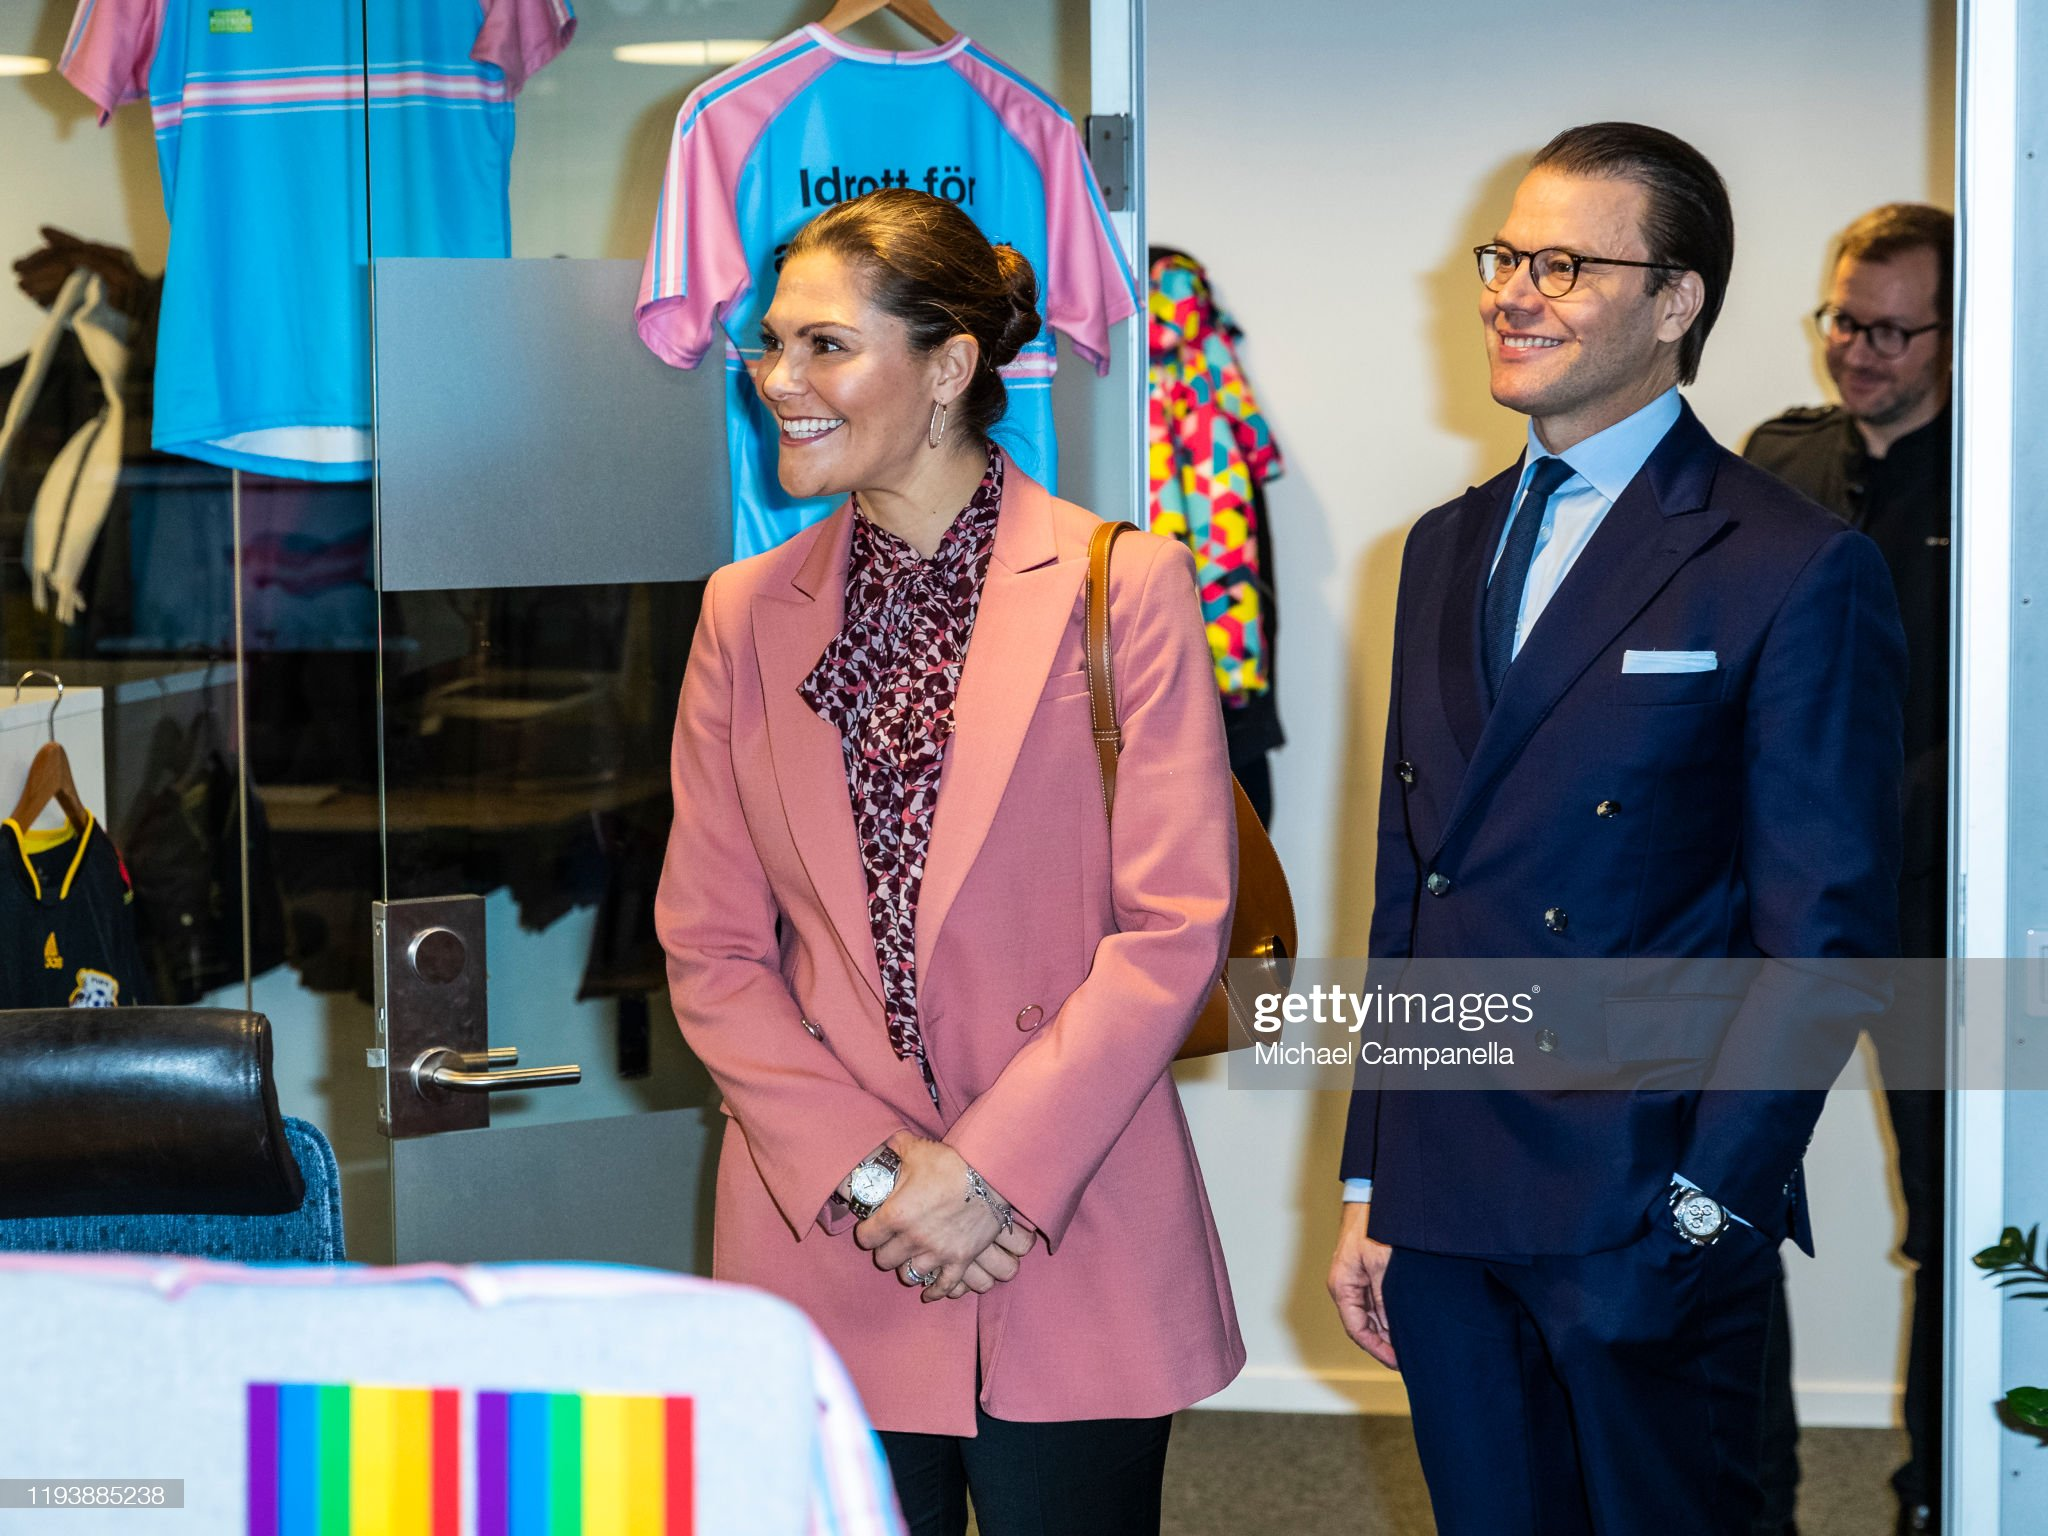 crown-princess-victoria-of-sweden-and-prince-daniel-of-sweden-visit-picture-id1193885238